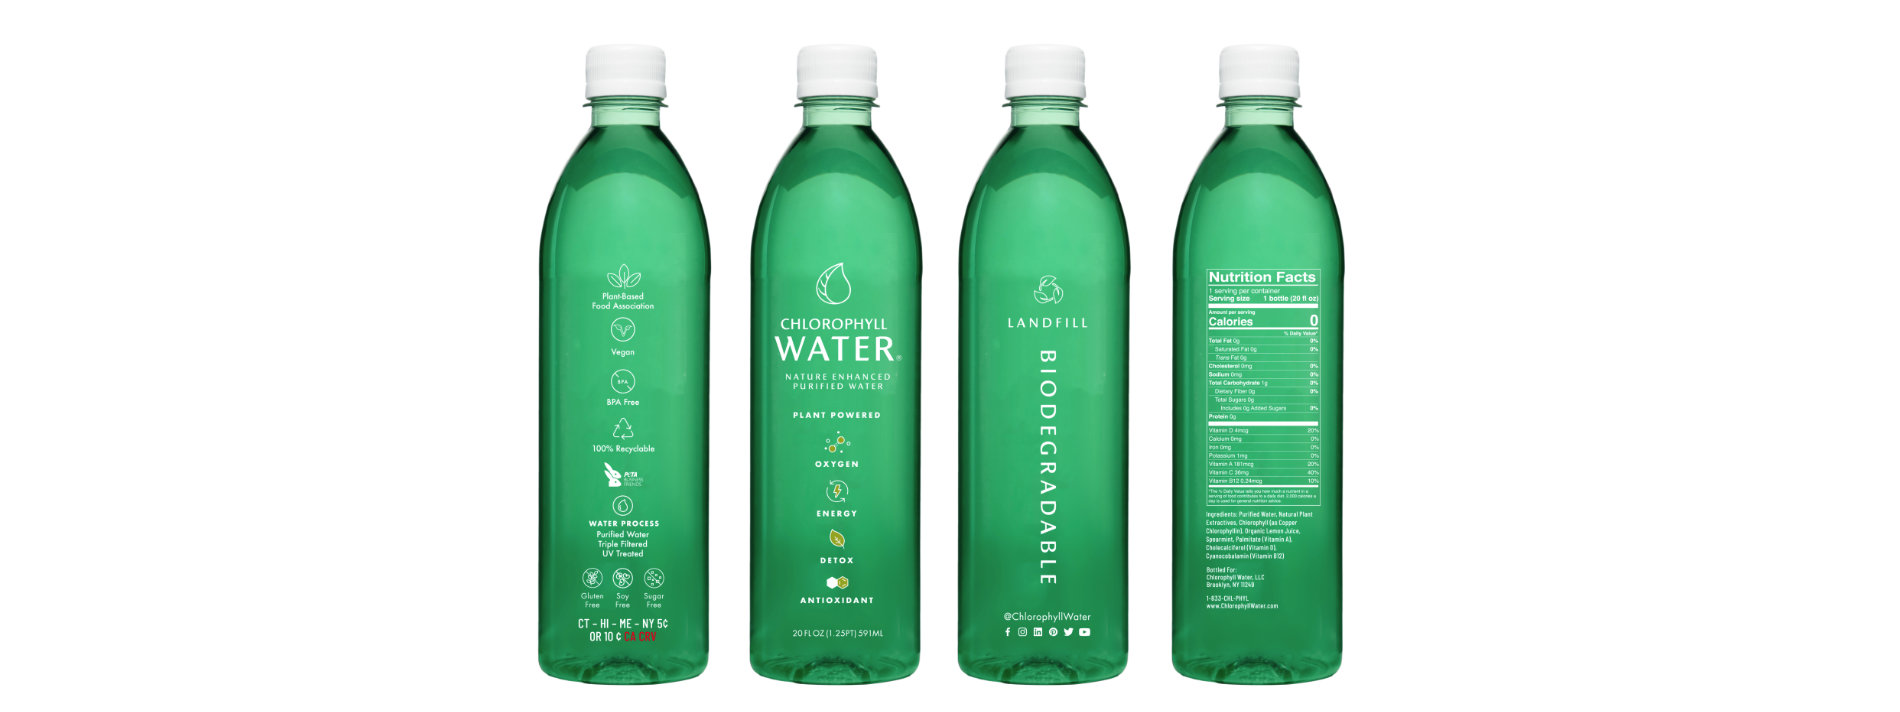 Chlorophyll Water Introduces Landfill Biodegradable Bottles